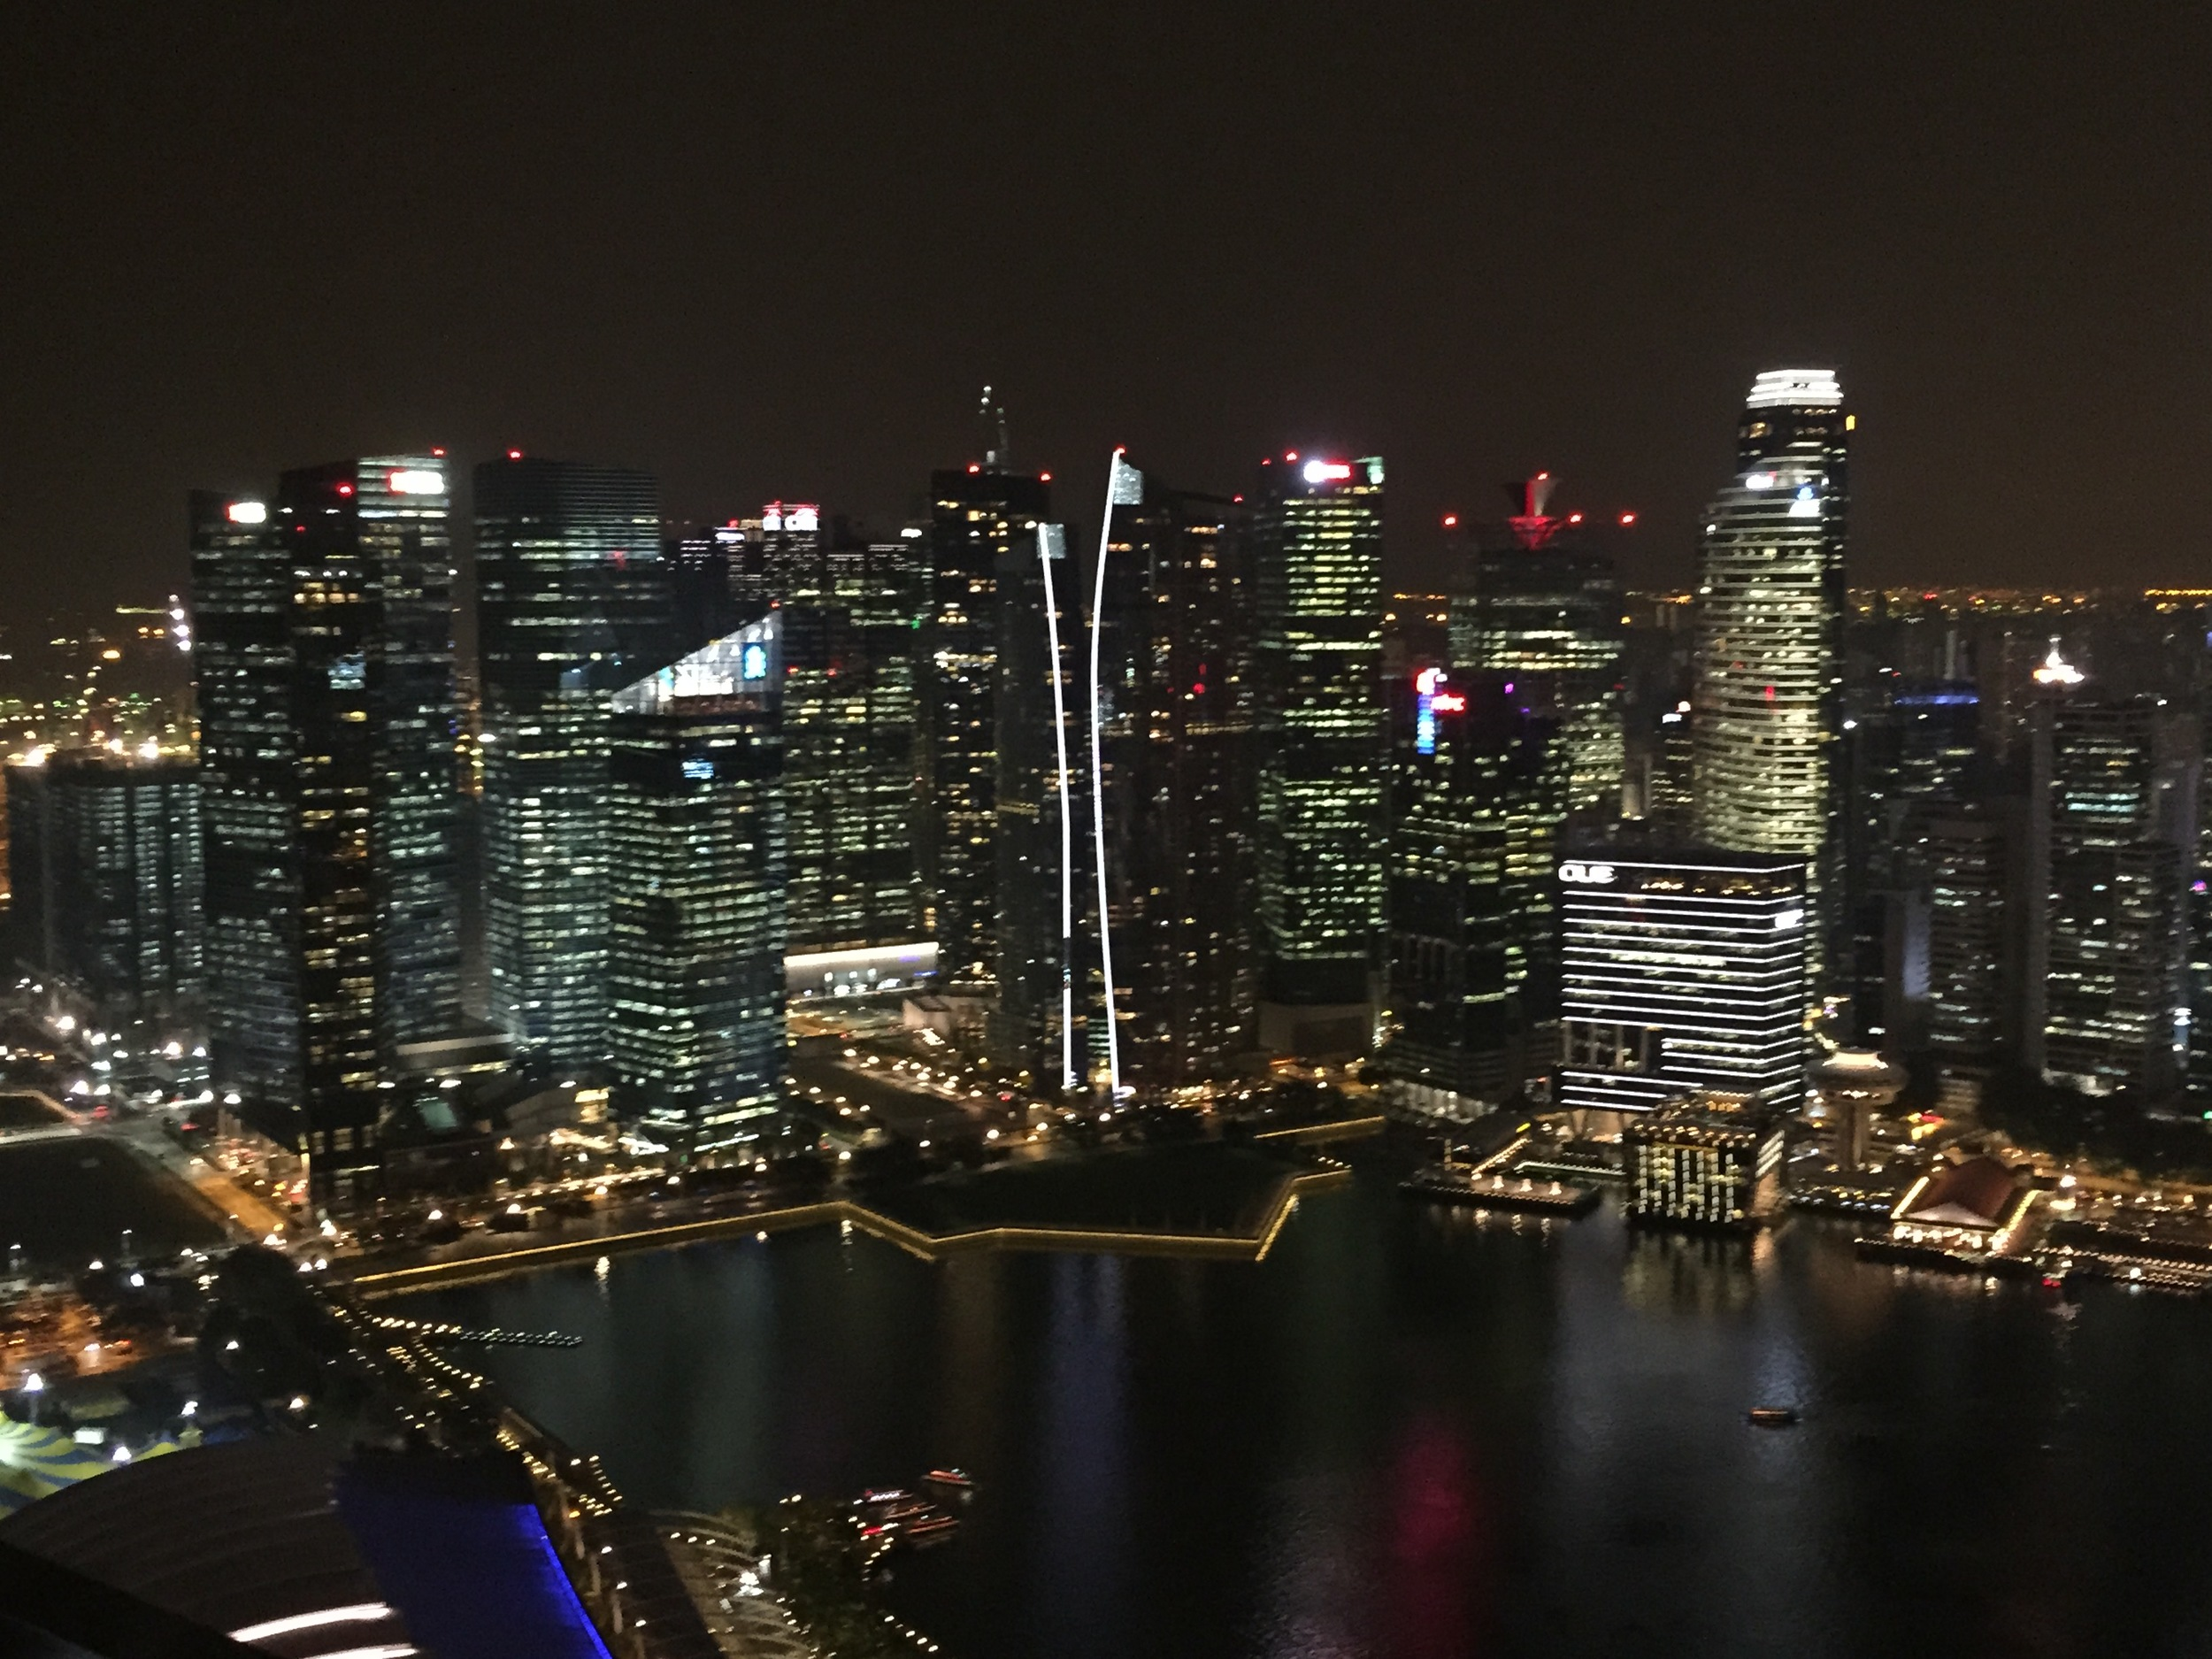 singapore skyline from the top of the marina bay sands resort where we adjourned to celebrate the end of a fabulous event